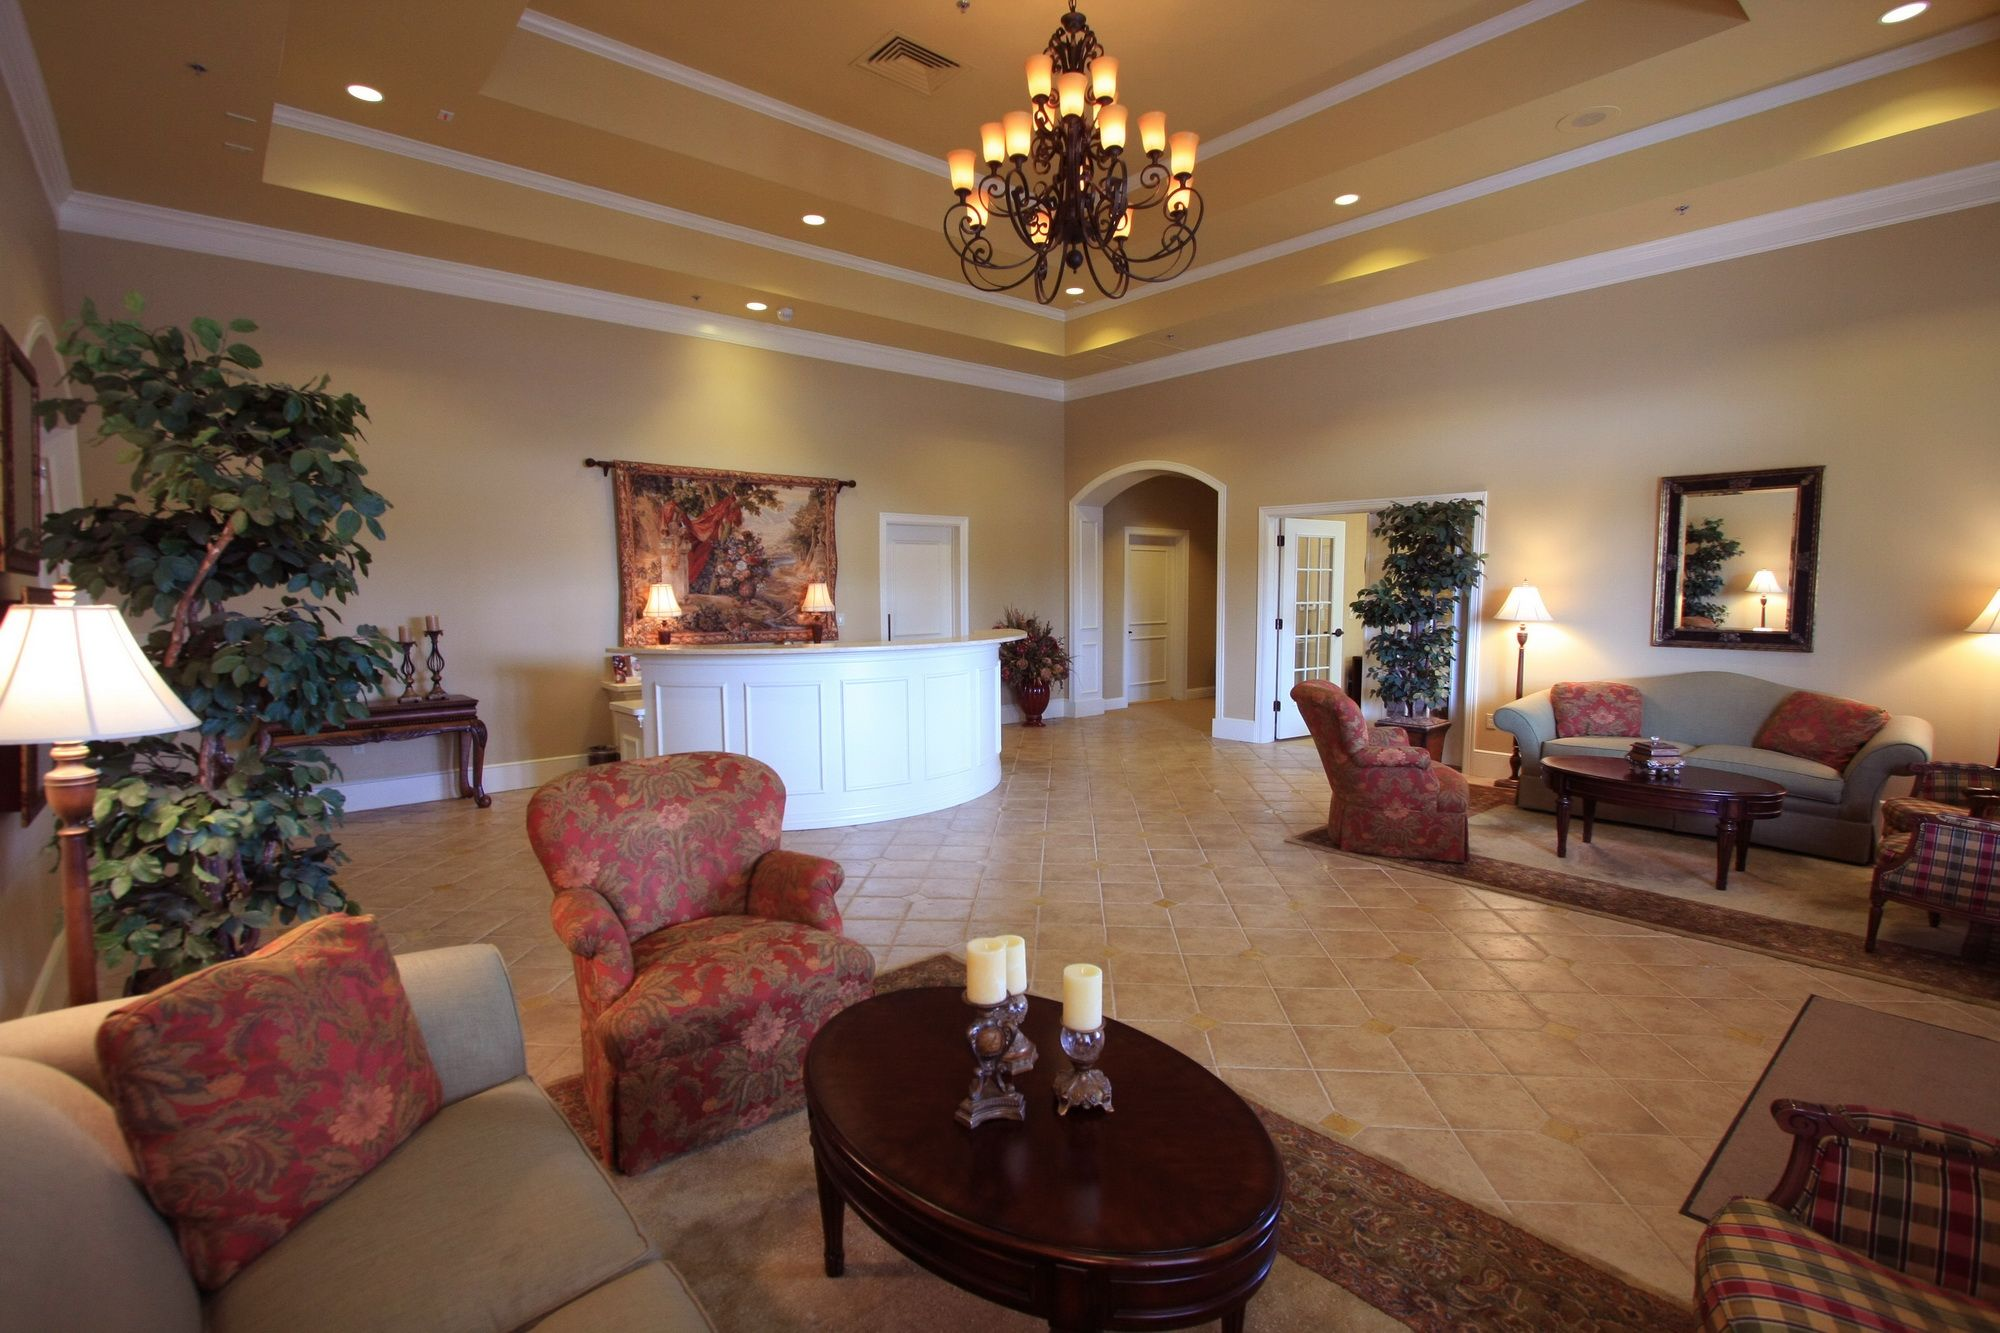 Funeral Home Interior Colors Interior Decor Which Fit With The French Country Architecture Interior House Colors Round Living Room Table Home Catering